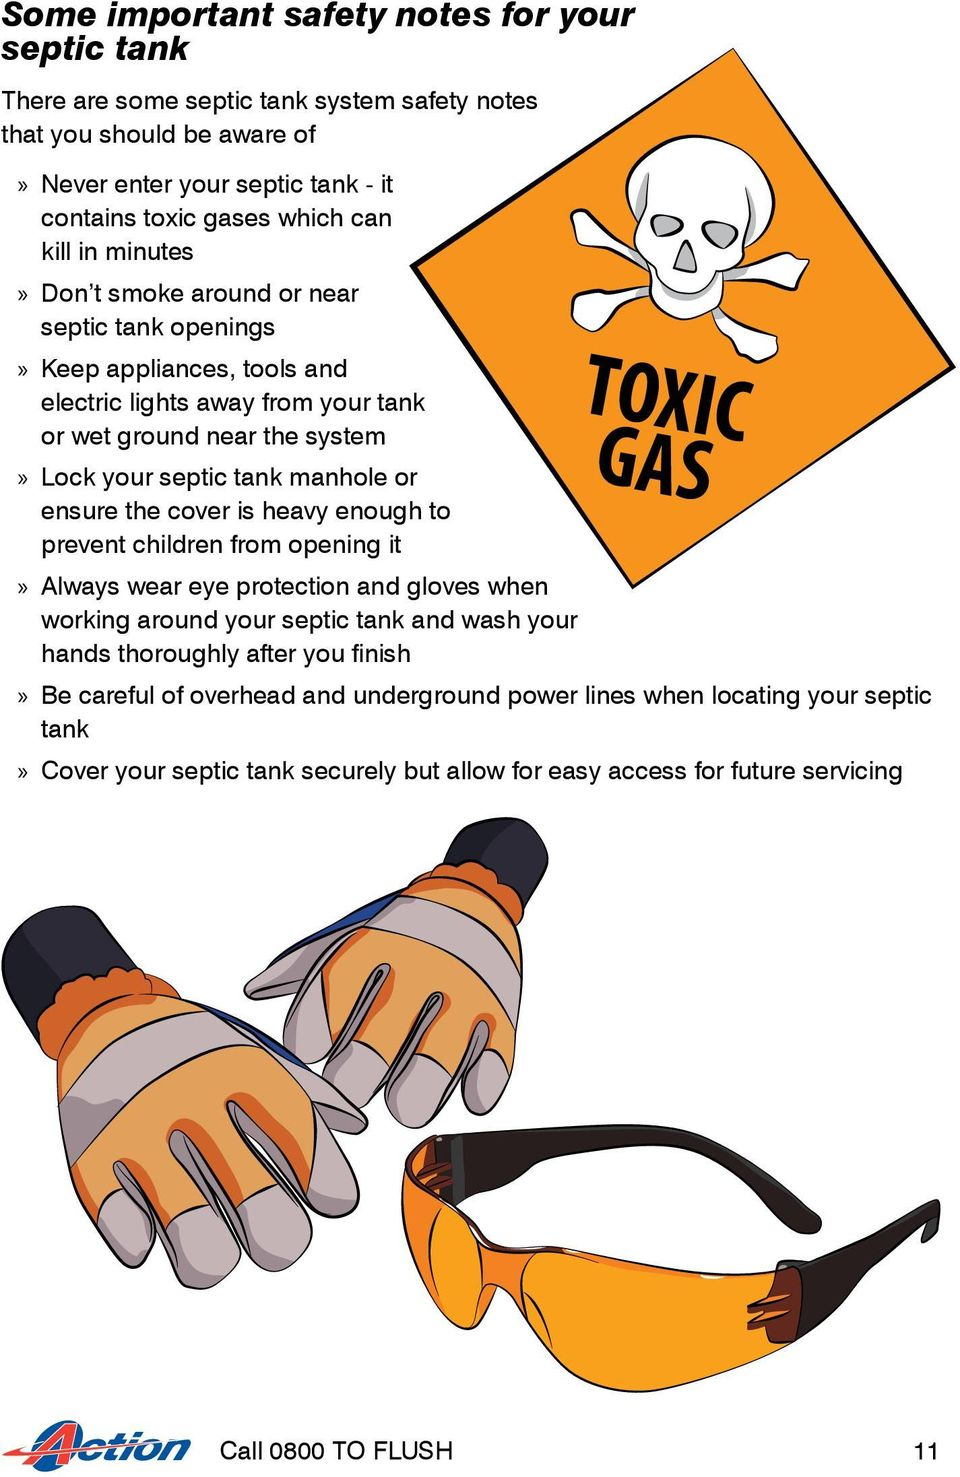 ensure the cover is heavy enough to prevent children from opening it TOXIC GAS Always wear eye protection and gloves when working around your septic tank and wash your hands thoroughly after